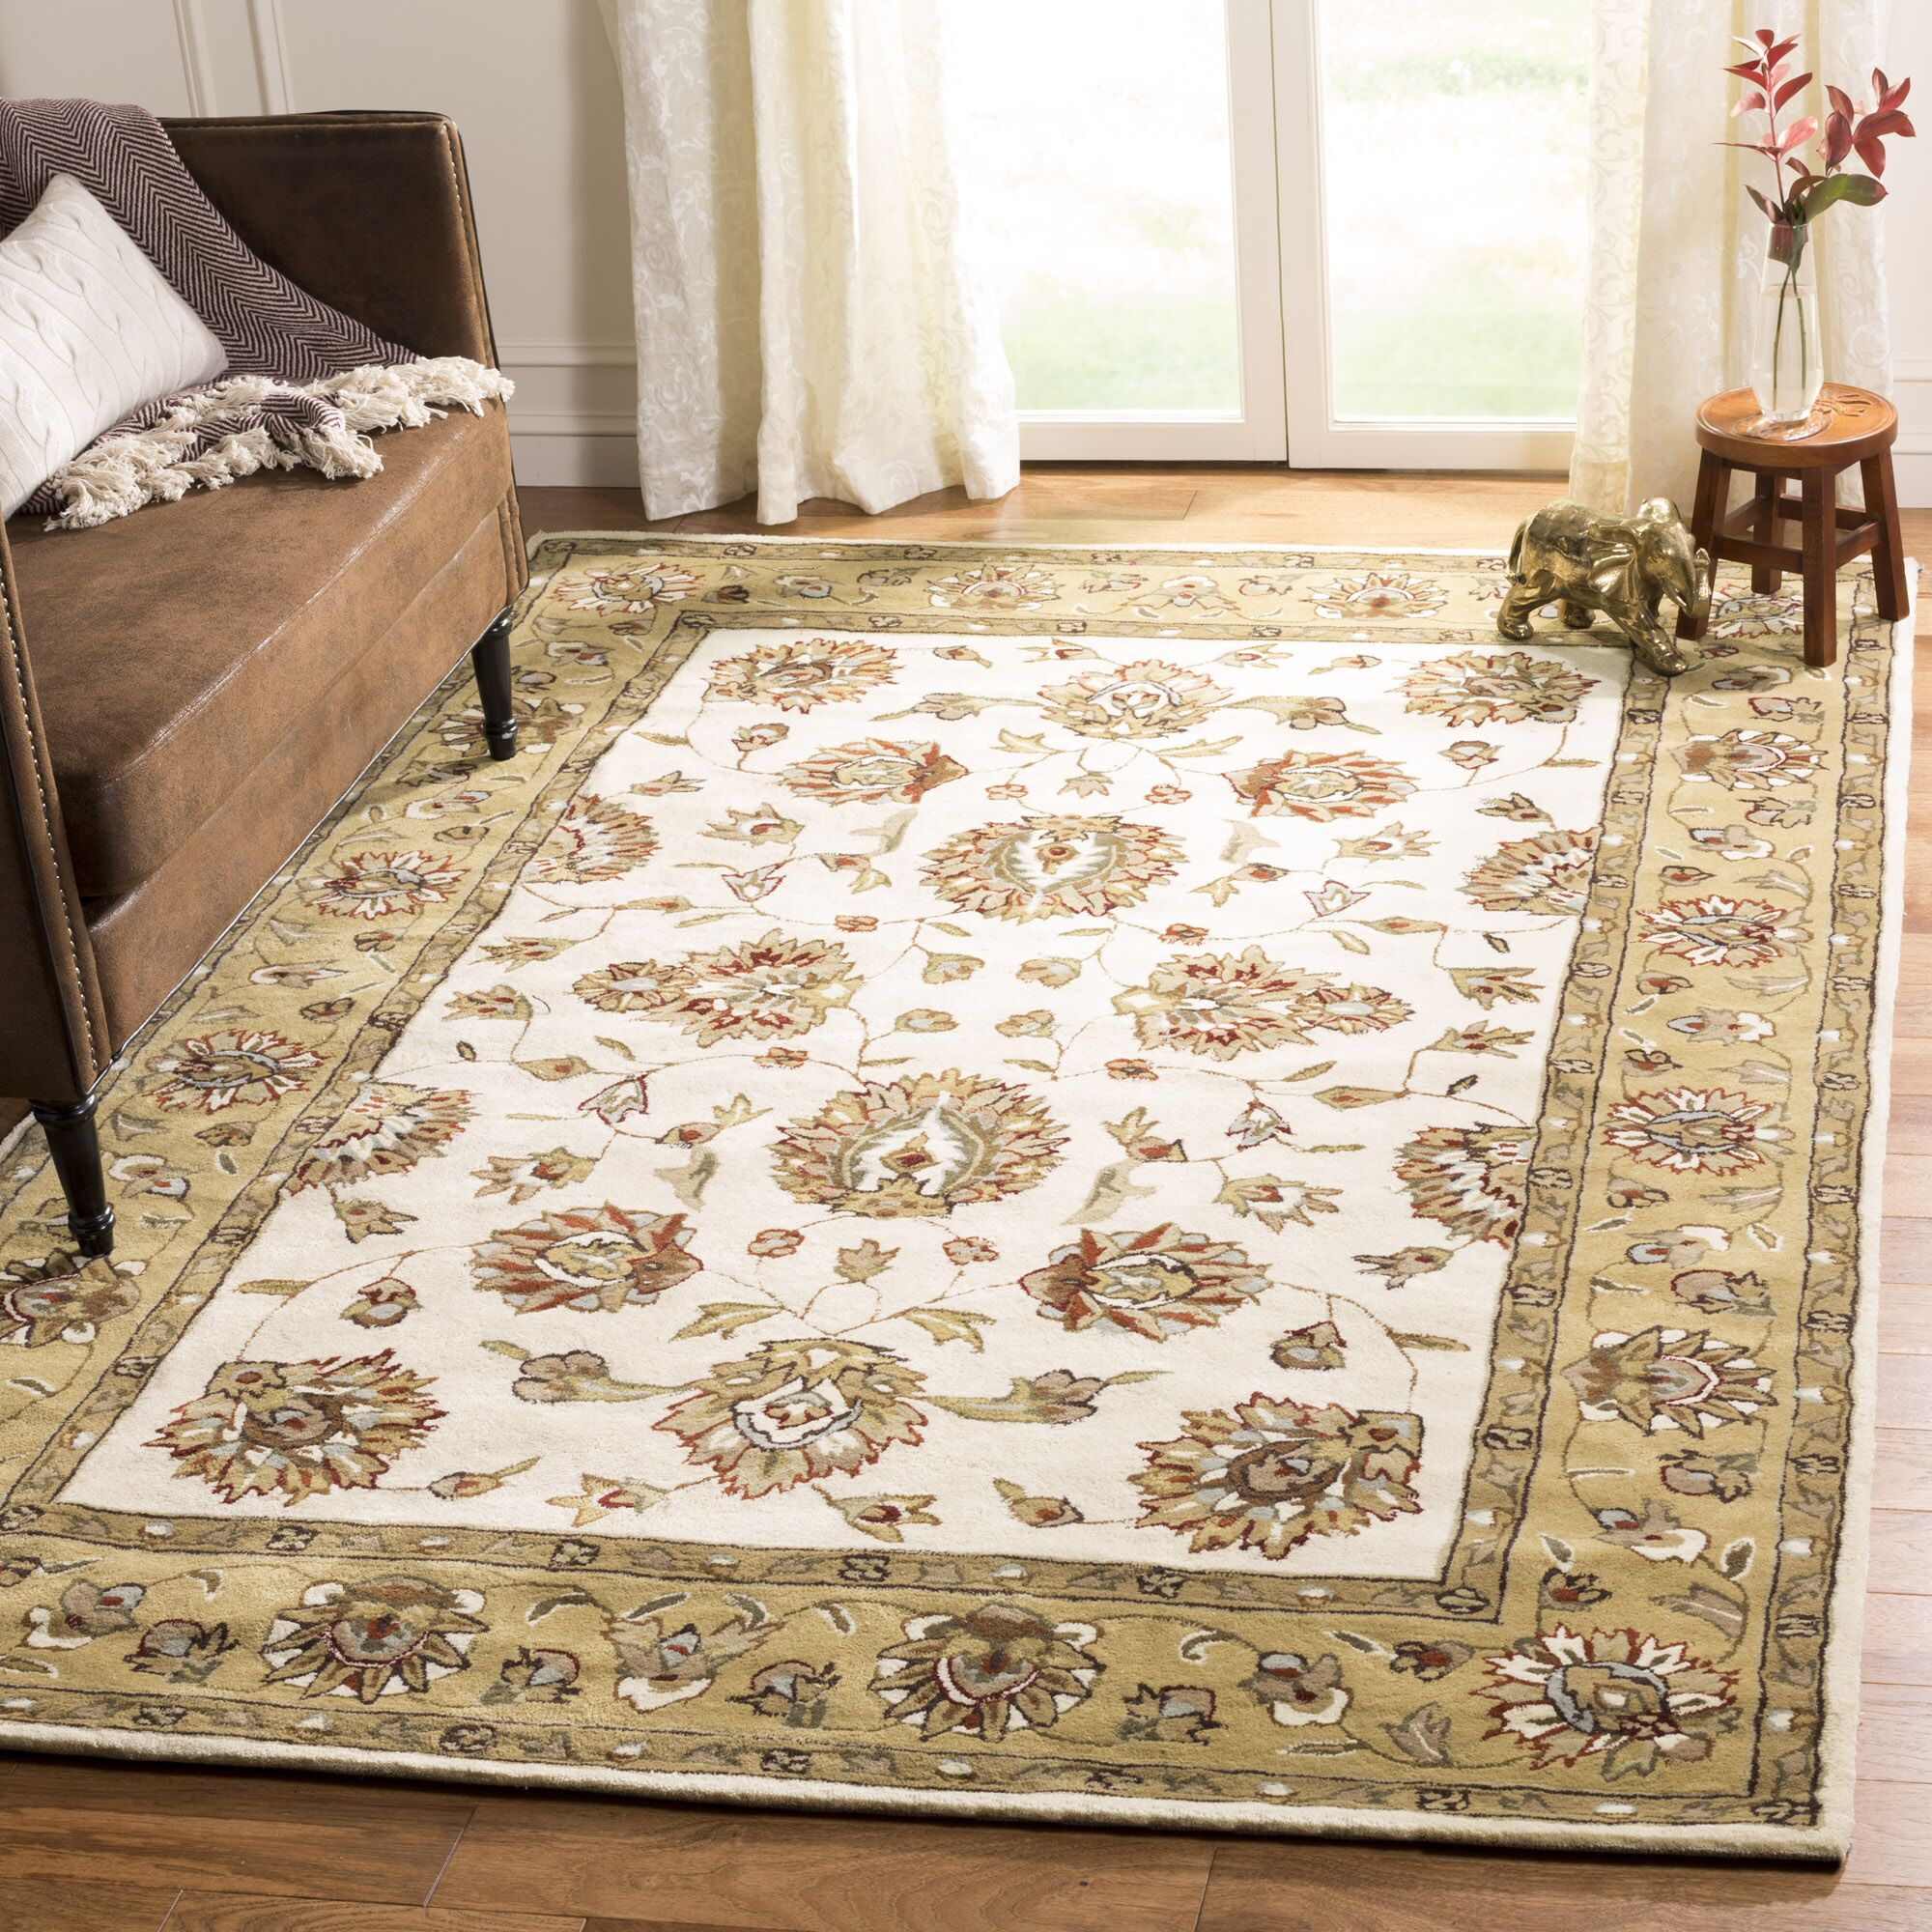 Cloverdale Hand-Hooked Ivory/Beige Area Rug Rug Size: Rectangle 9' x 12'